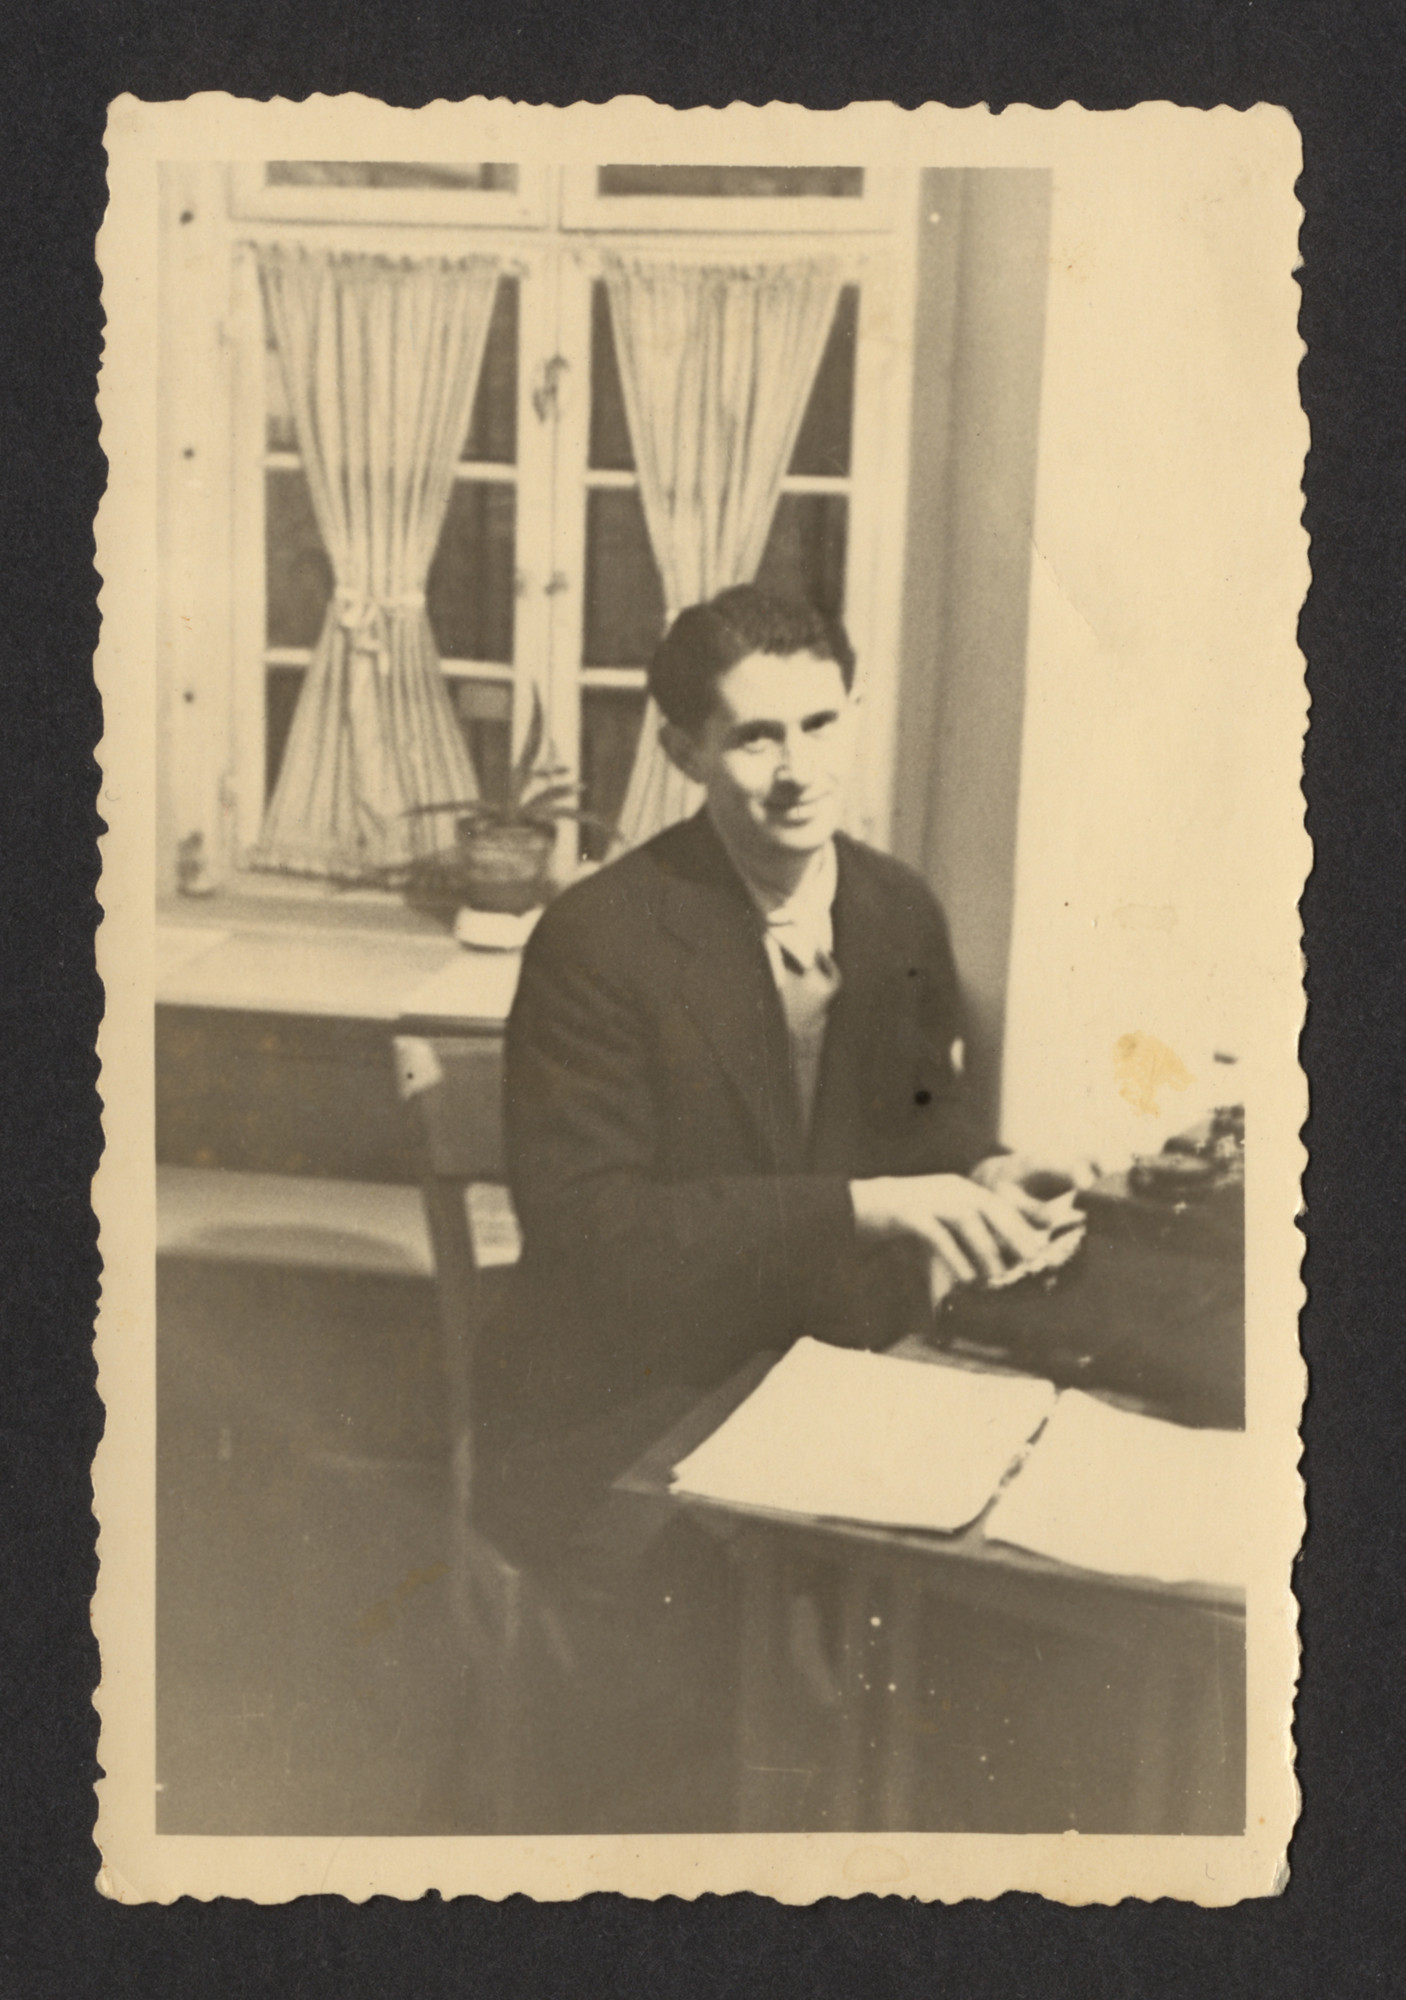 A Polish Jewish displaced person is seated at a typewriter at the Schwaebish Hall DP camp  Pictured is Mayer Spiro.